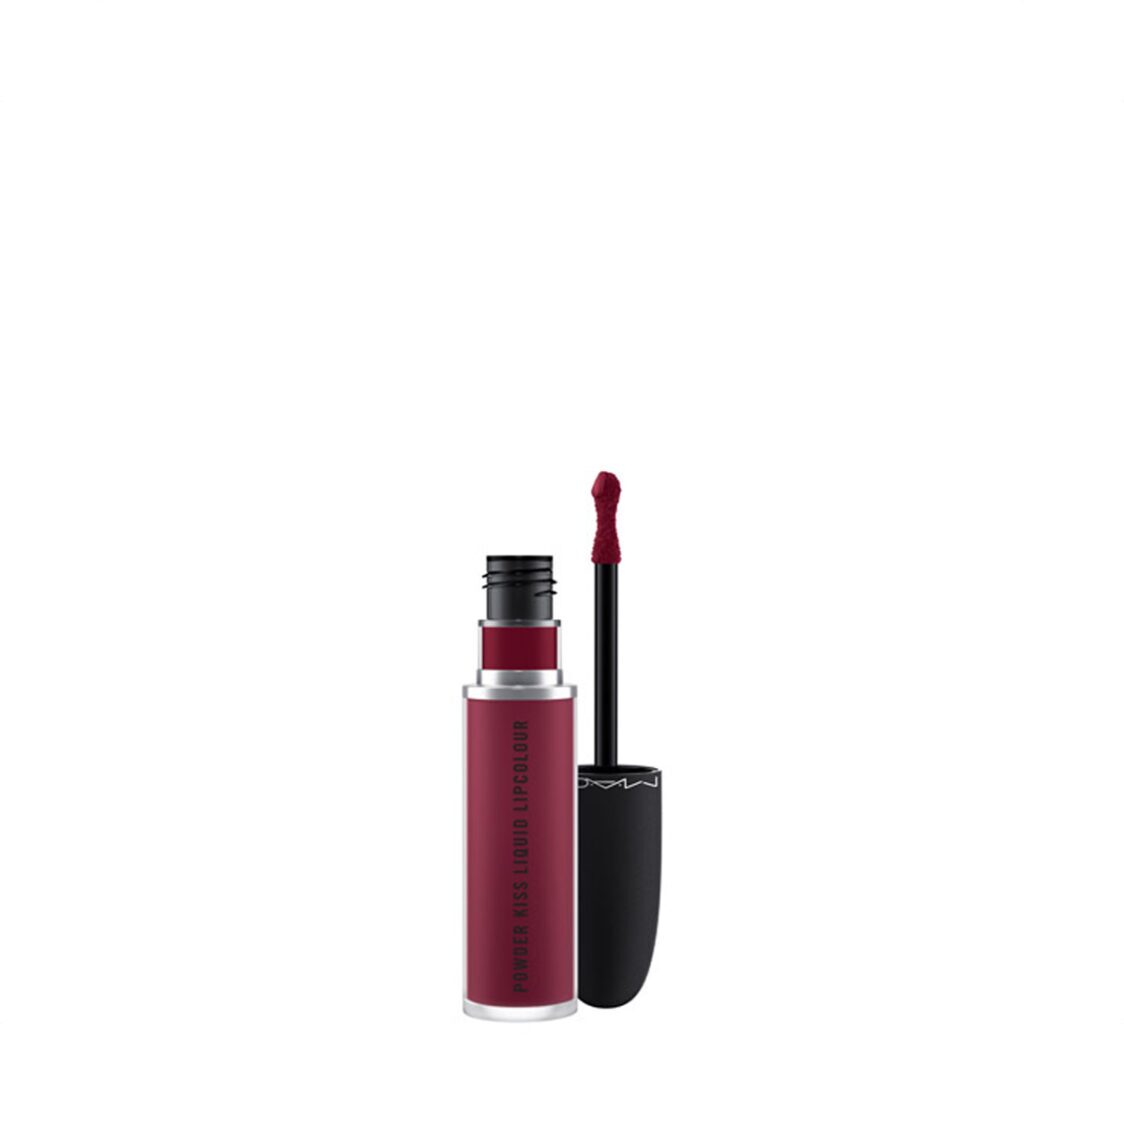 MAC Powder Kiss Liquid Lipcolour